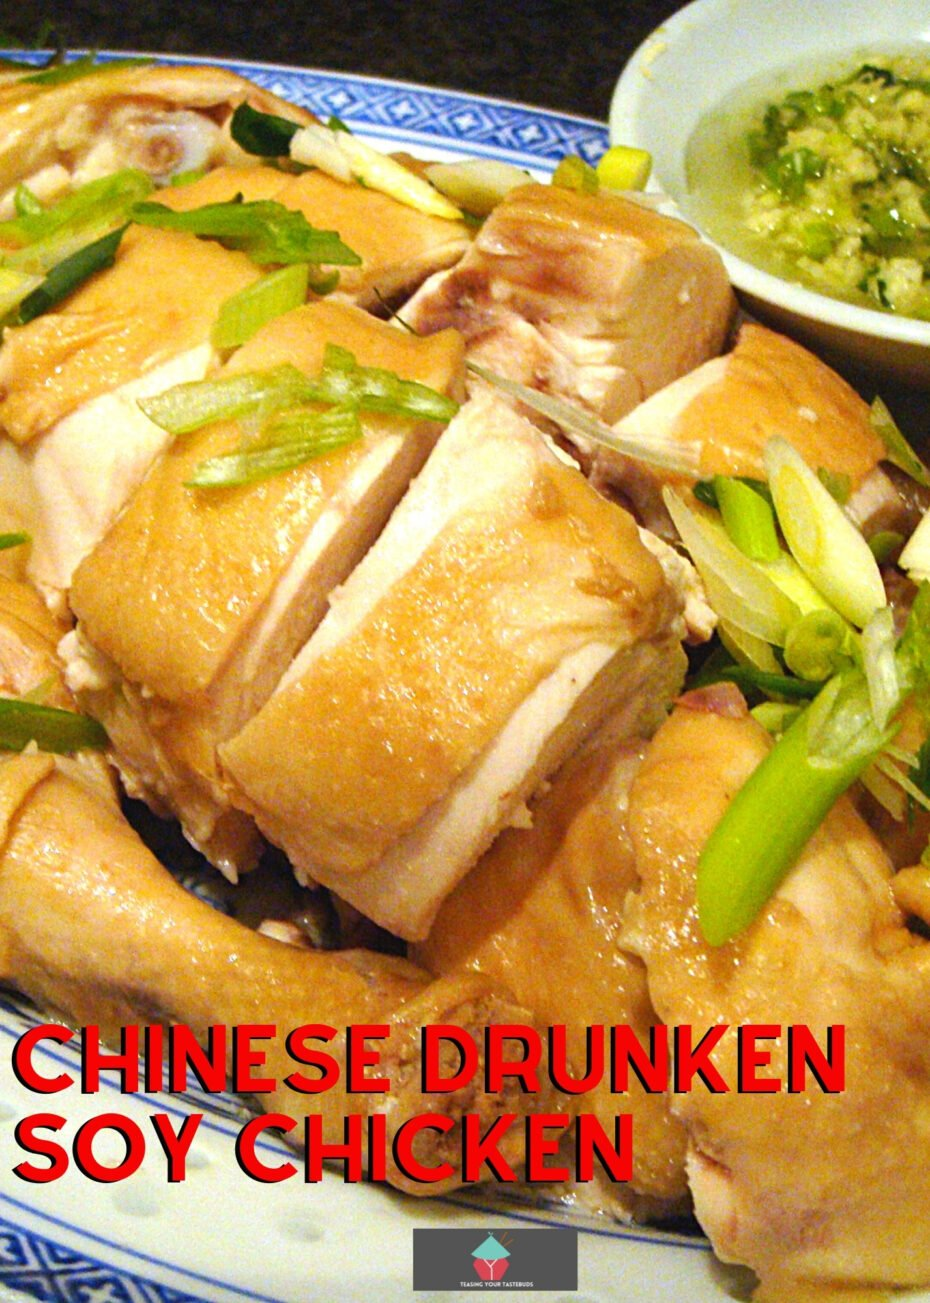 Chinese Drunken Soy Chicken is a lovely recipe, cooked in a rice wine and soy broth, keeping it juicy and full of flavor. Also recipe for ginger & scallion dipping sauce.